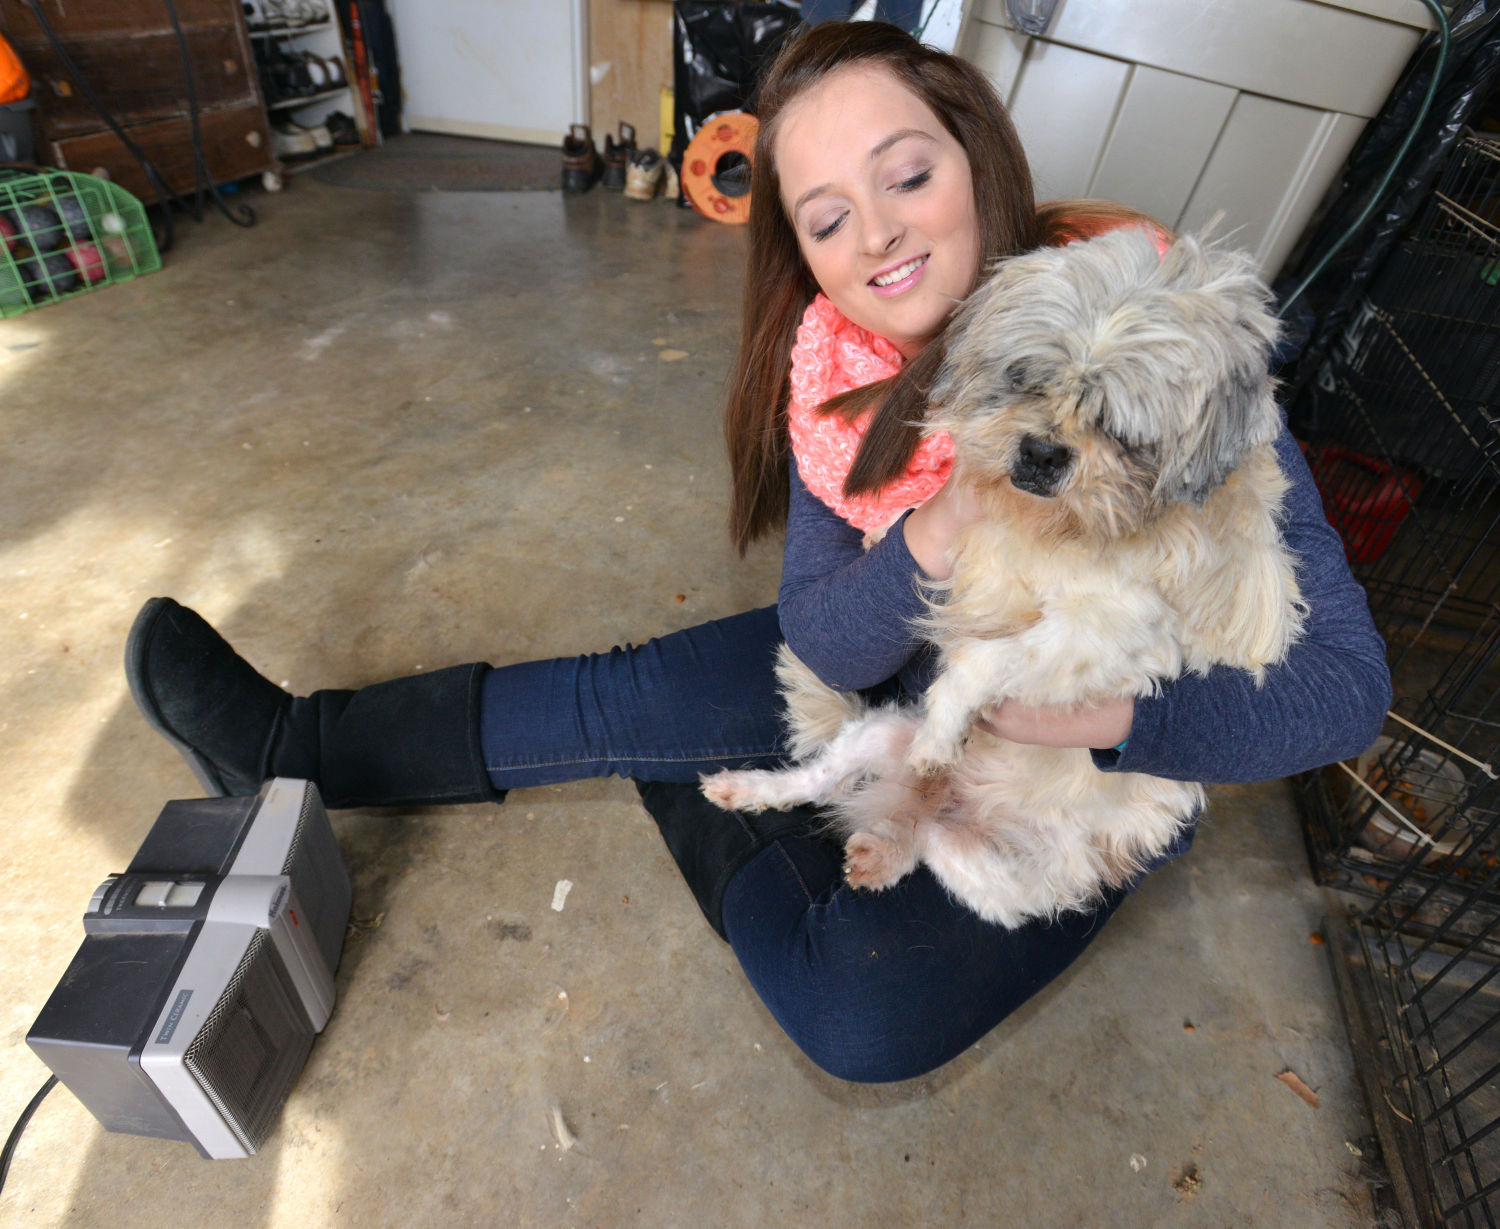 Garage Heater For Dogs Winter Weather Holiday Season Pose Number Of Threats To Pets